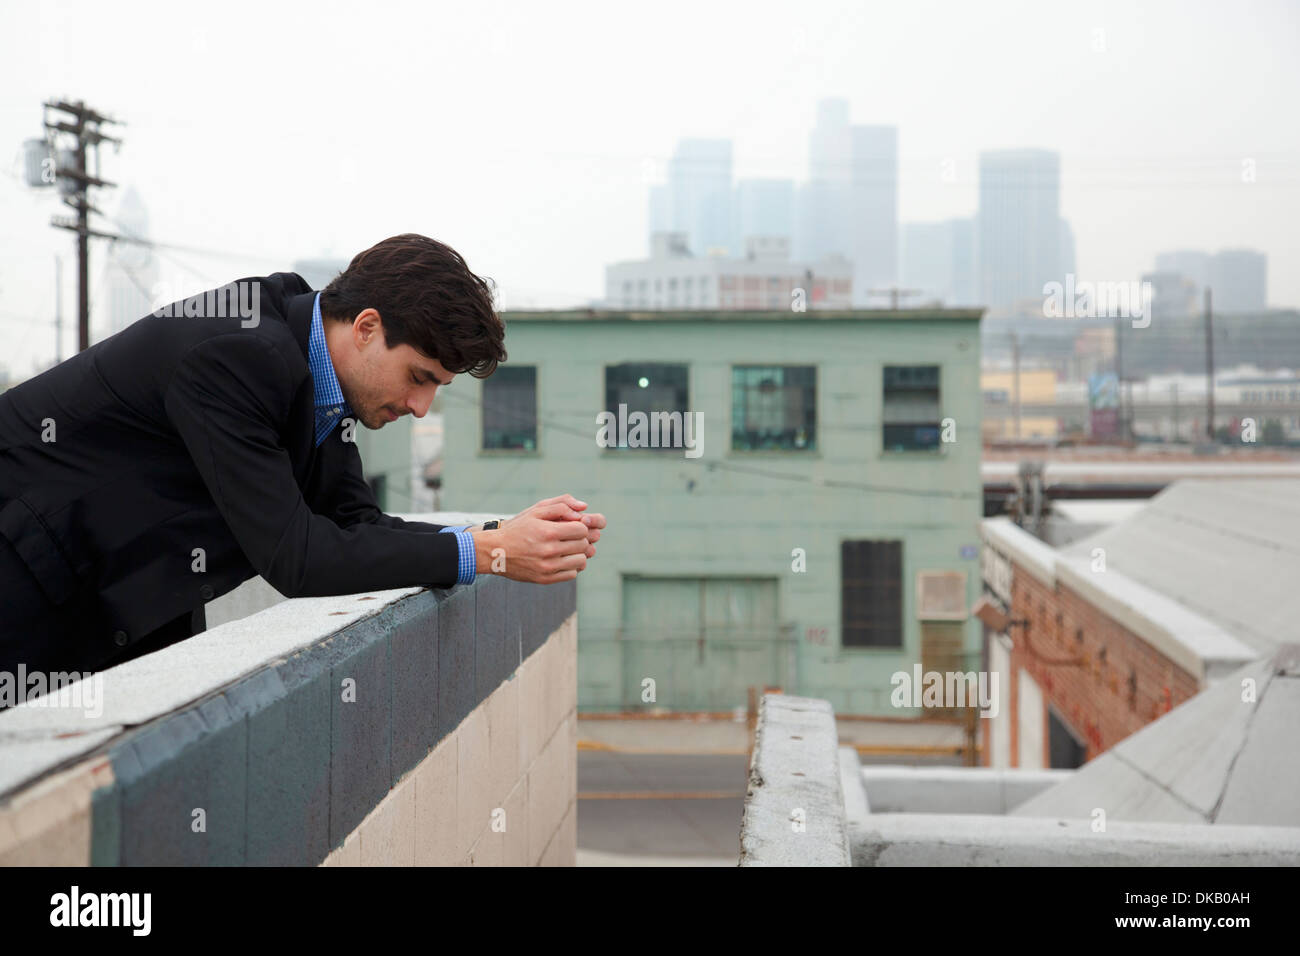 Unhappy young man looking down from city rooftop - Stock Image